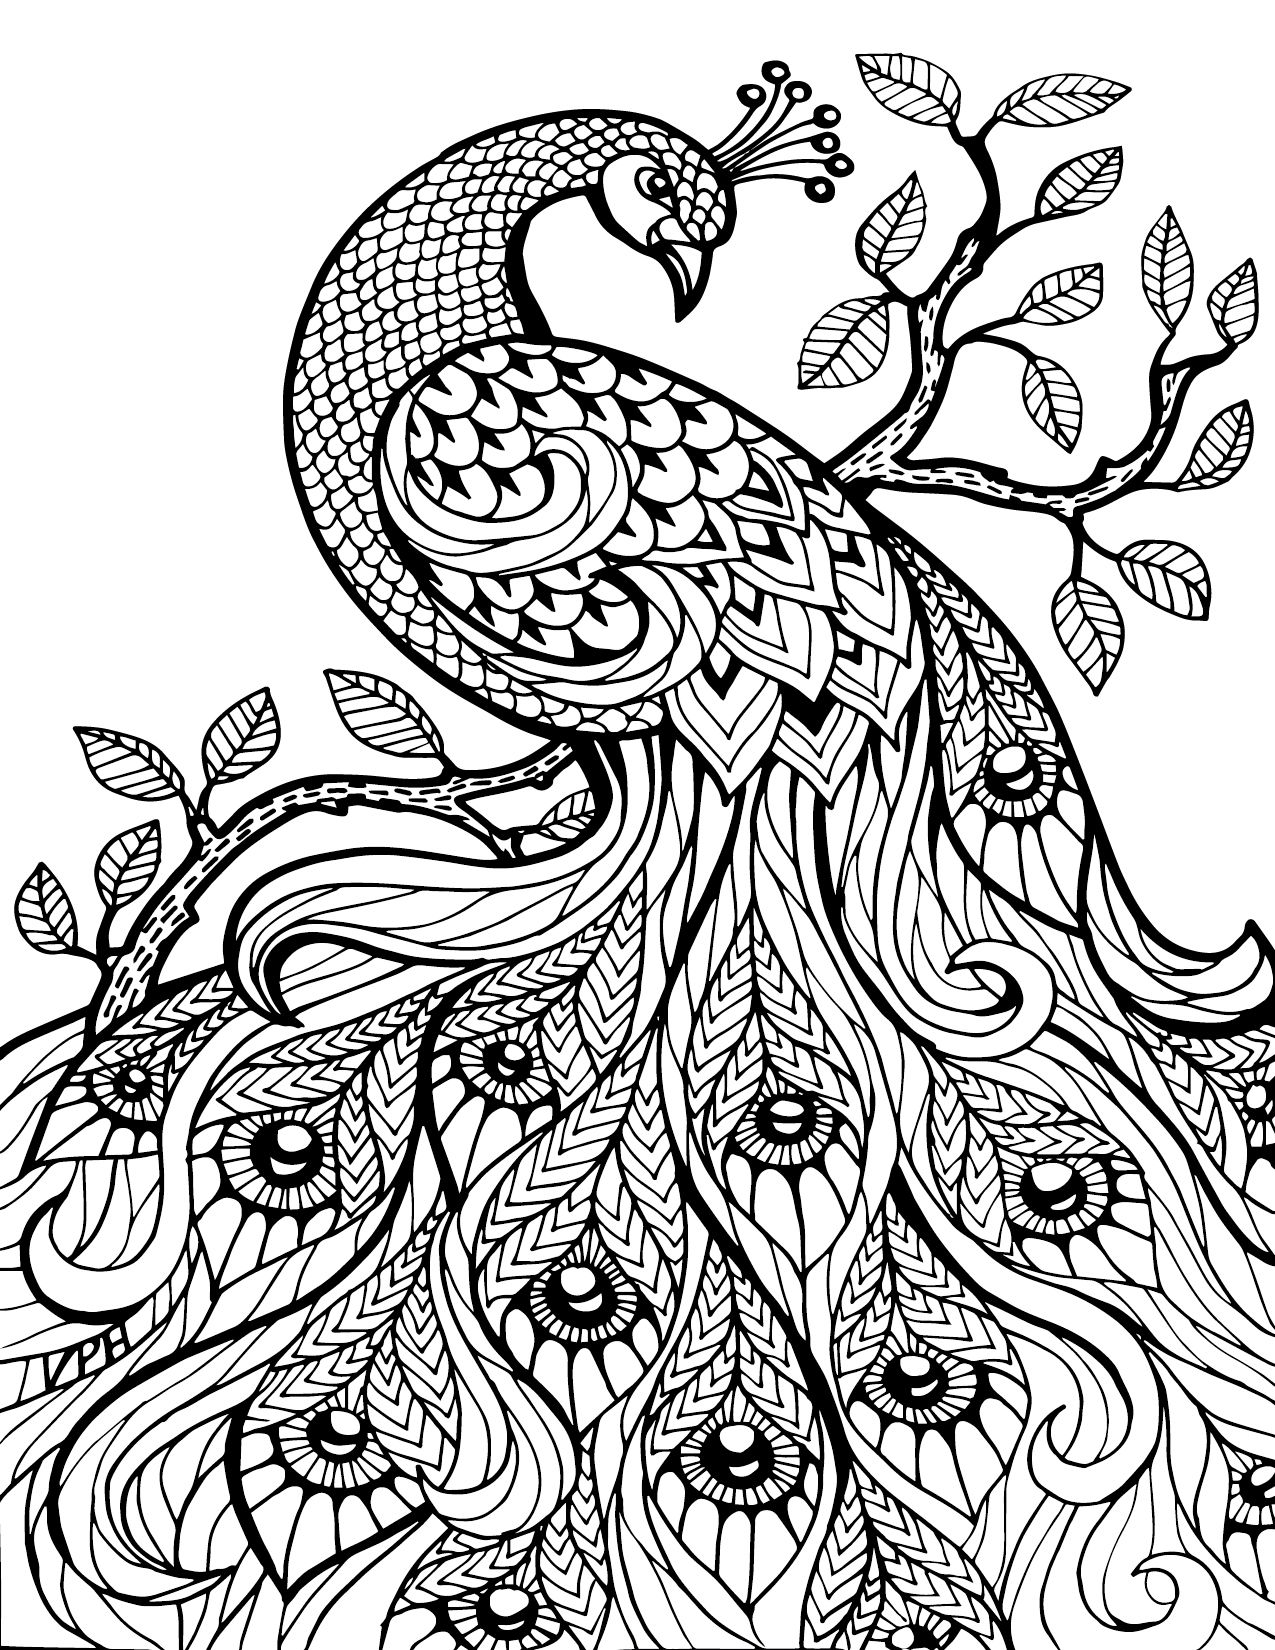 Printable coloring pages with animals - Free Printable Coloring Pages For Adults Only Image 36 Art Davlin Publishing